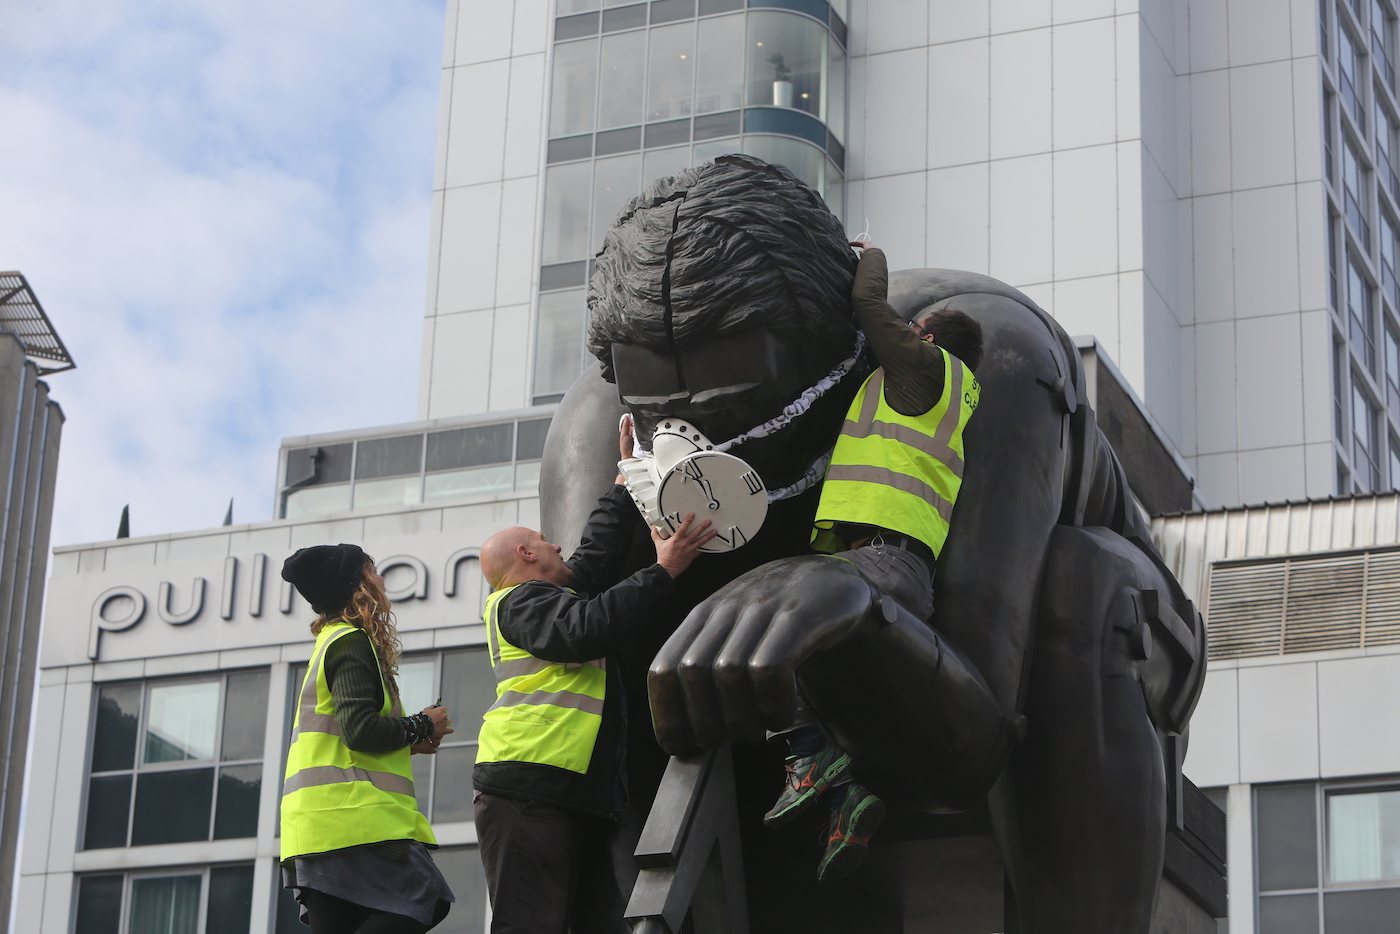 Greenpeace activists fit a statue of Isaac Newton at The British Library with an emergency face mask (photo by John Cobb)